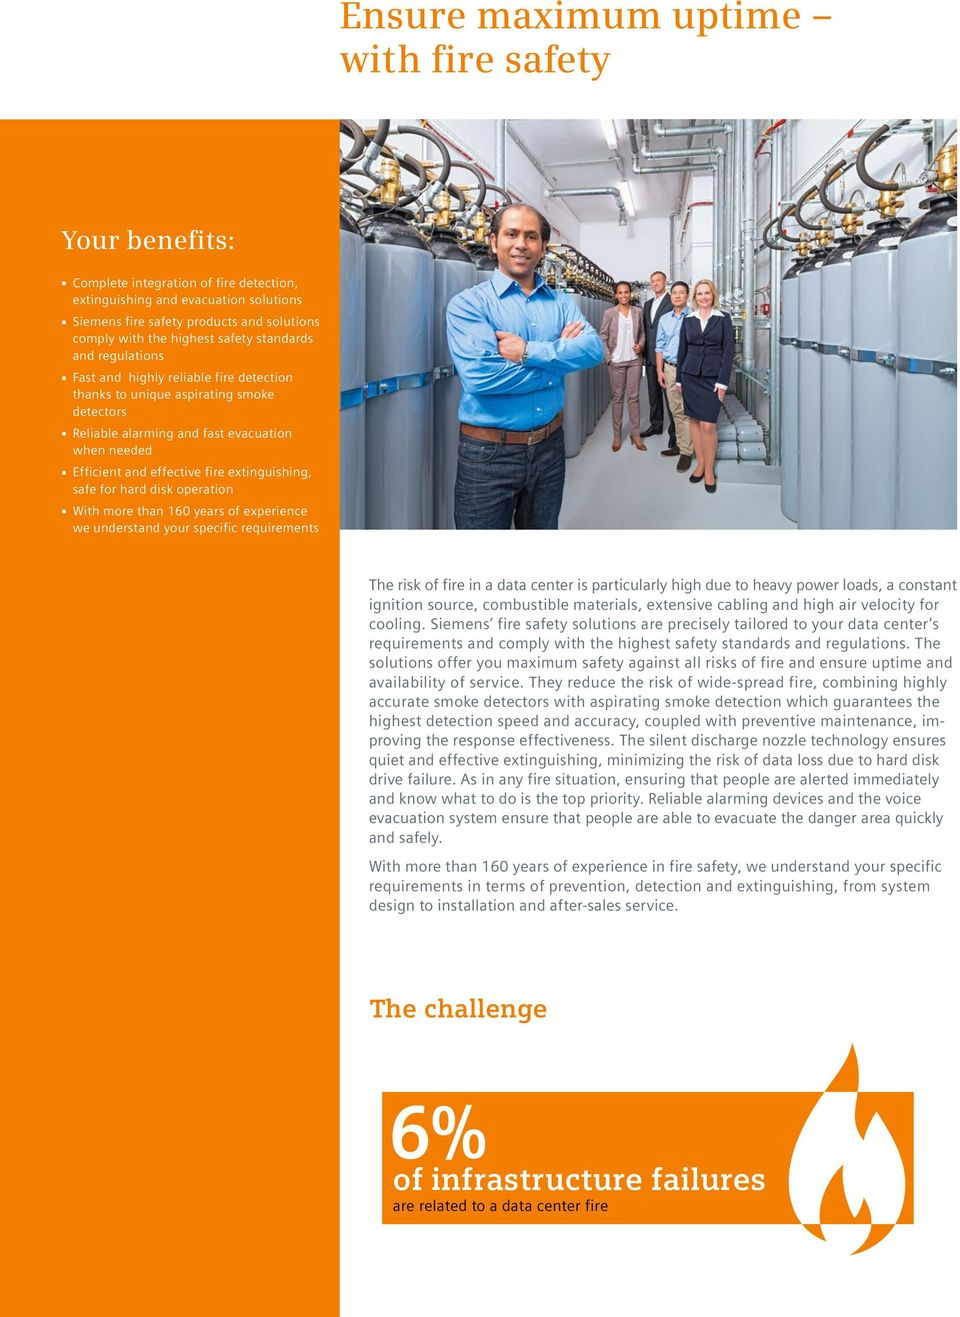 extinguishing, safe for hard disk operation With more than 160 years of experience we understand your specific requirements The risk of fire in a data center is particularly high due to heavy power